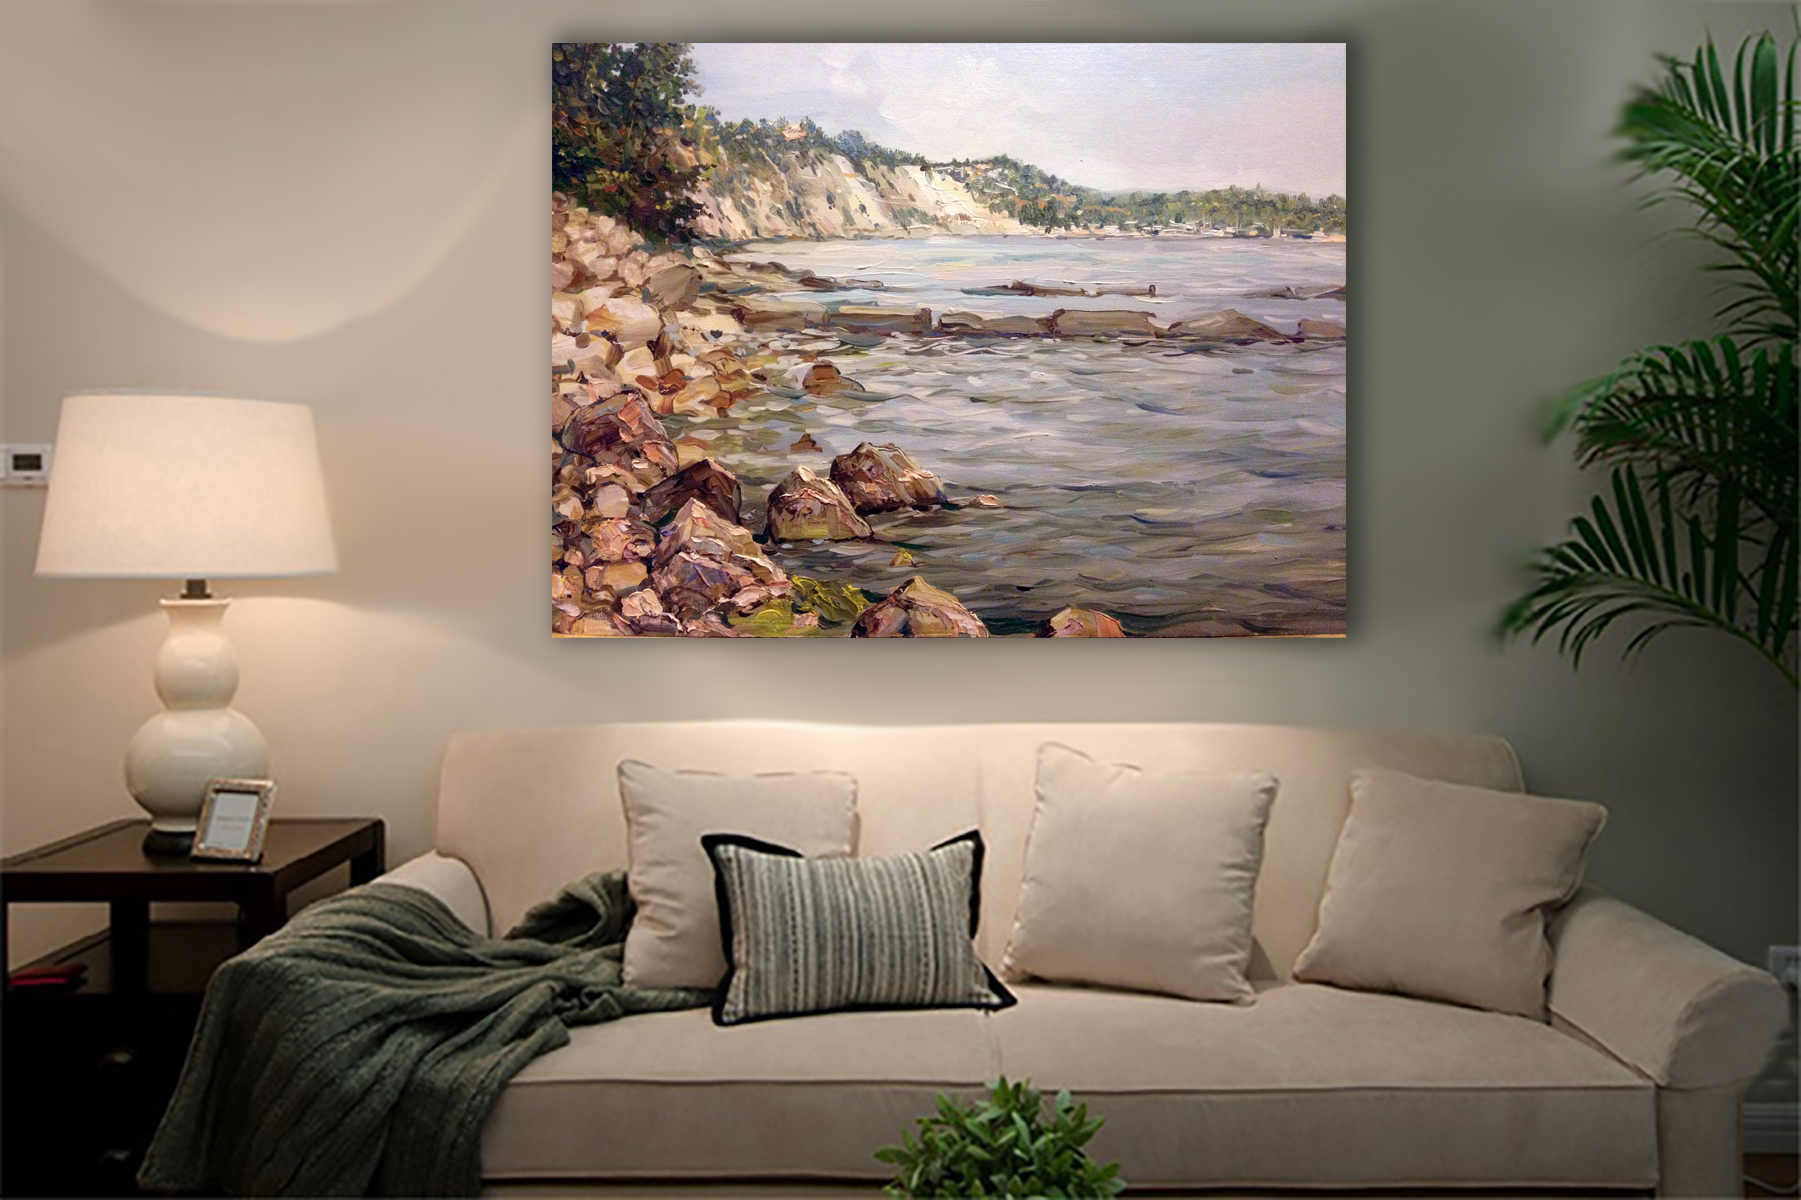 Sea of serenity - Art print on canvas